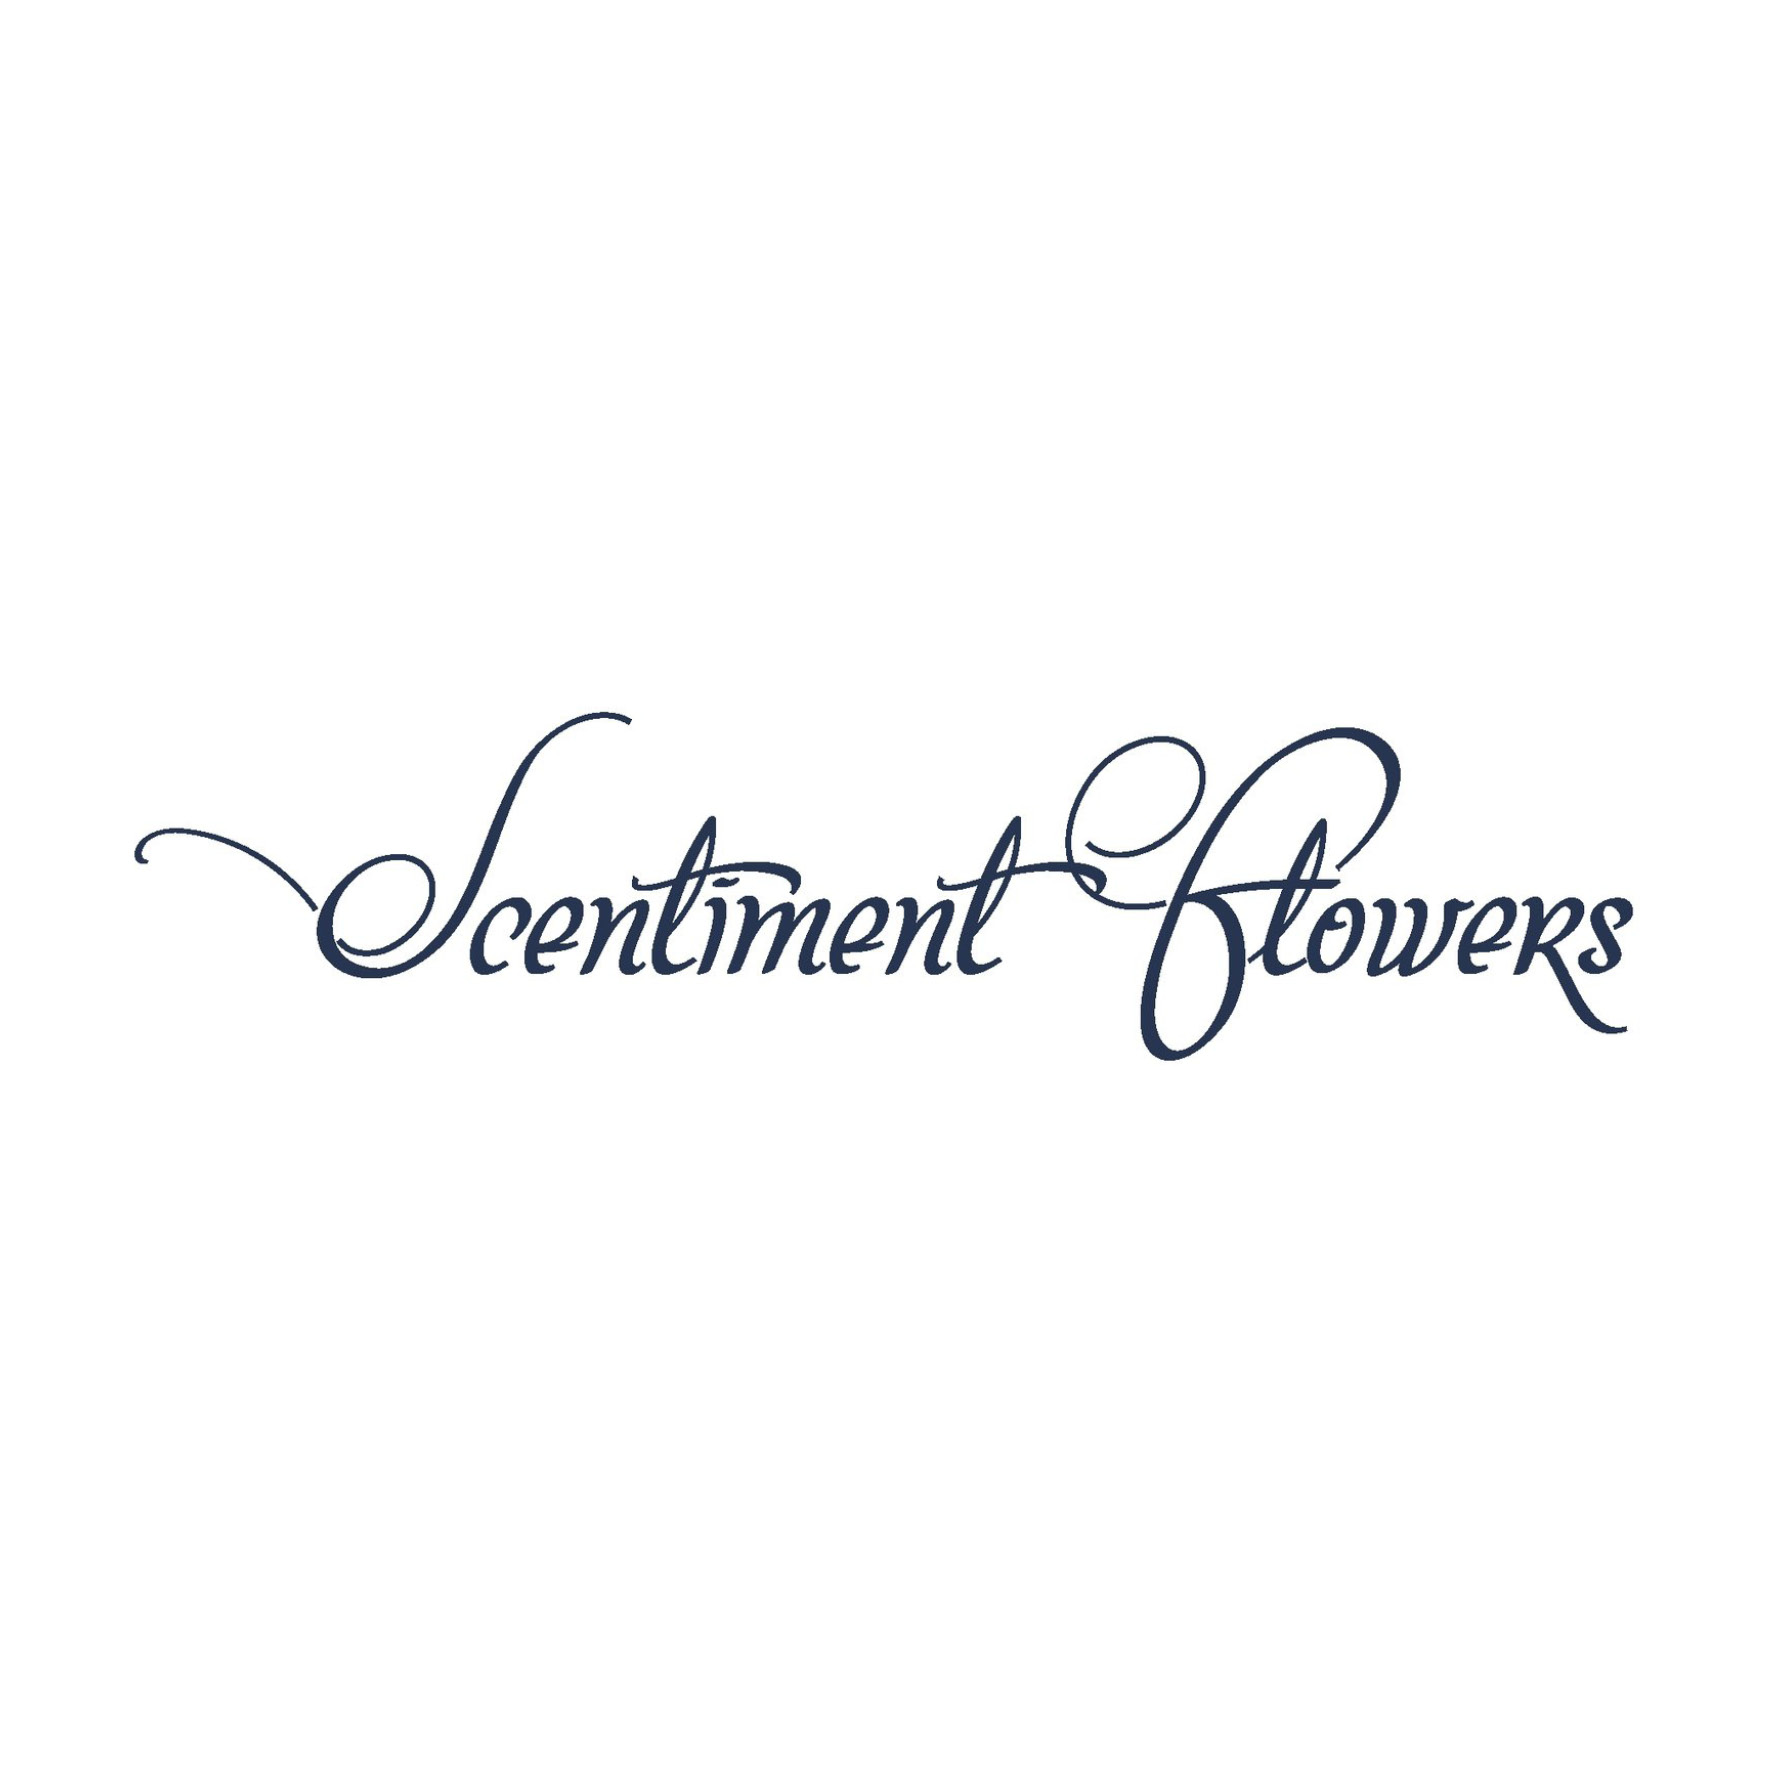 Exhibitor Logo - Scentiment.jpg